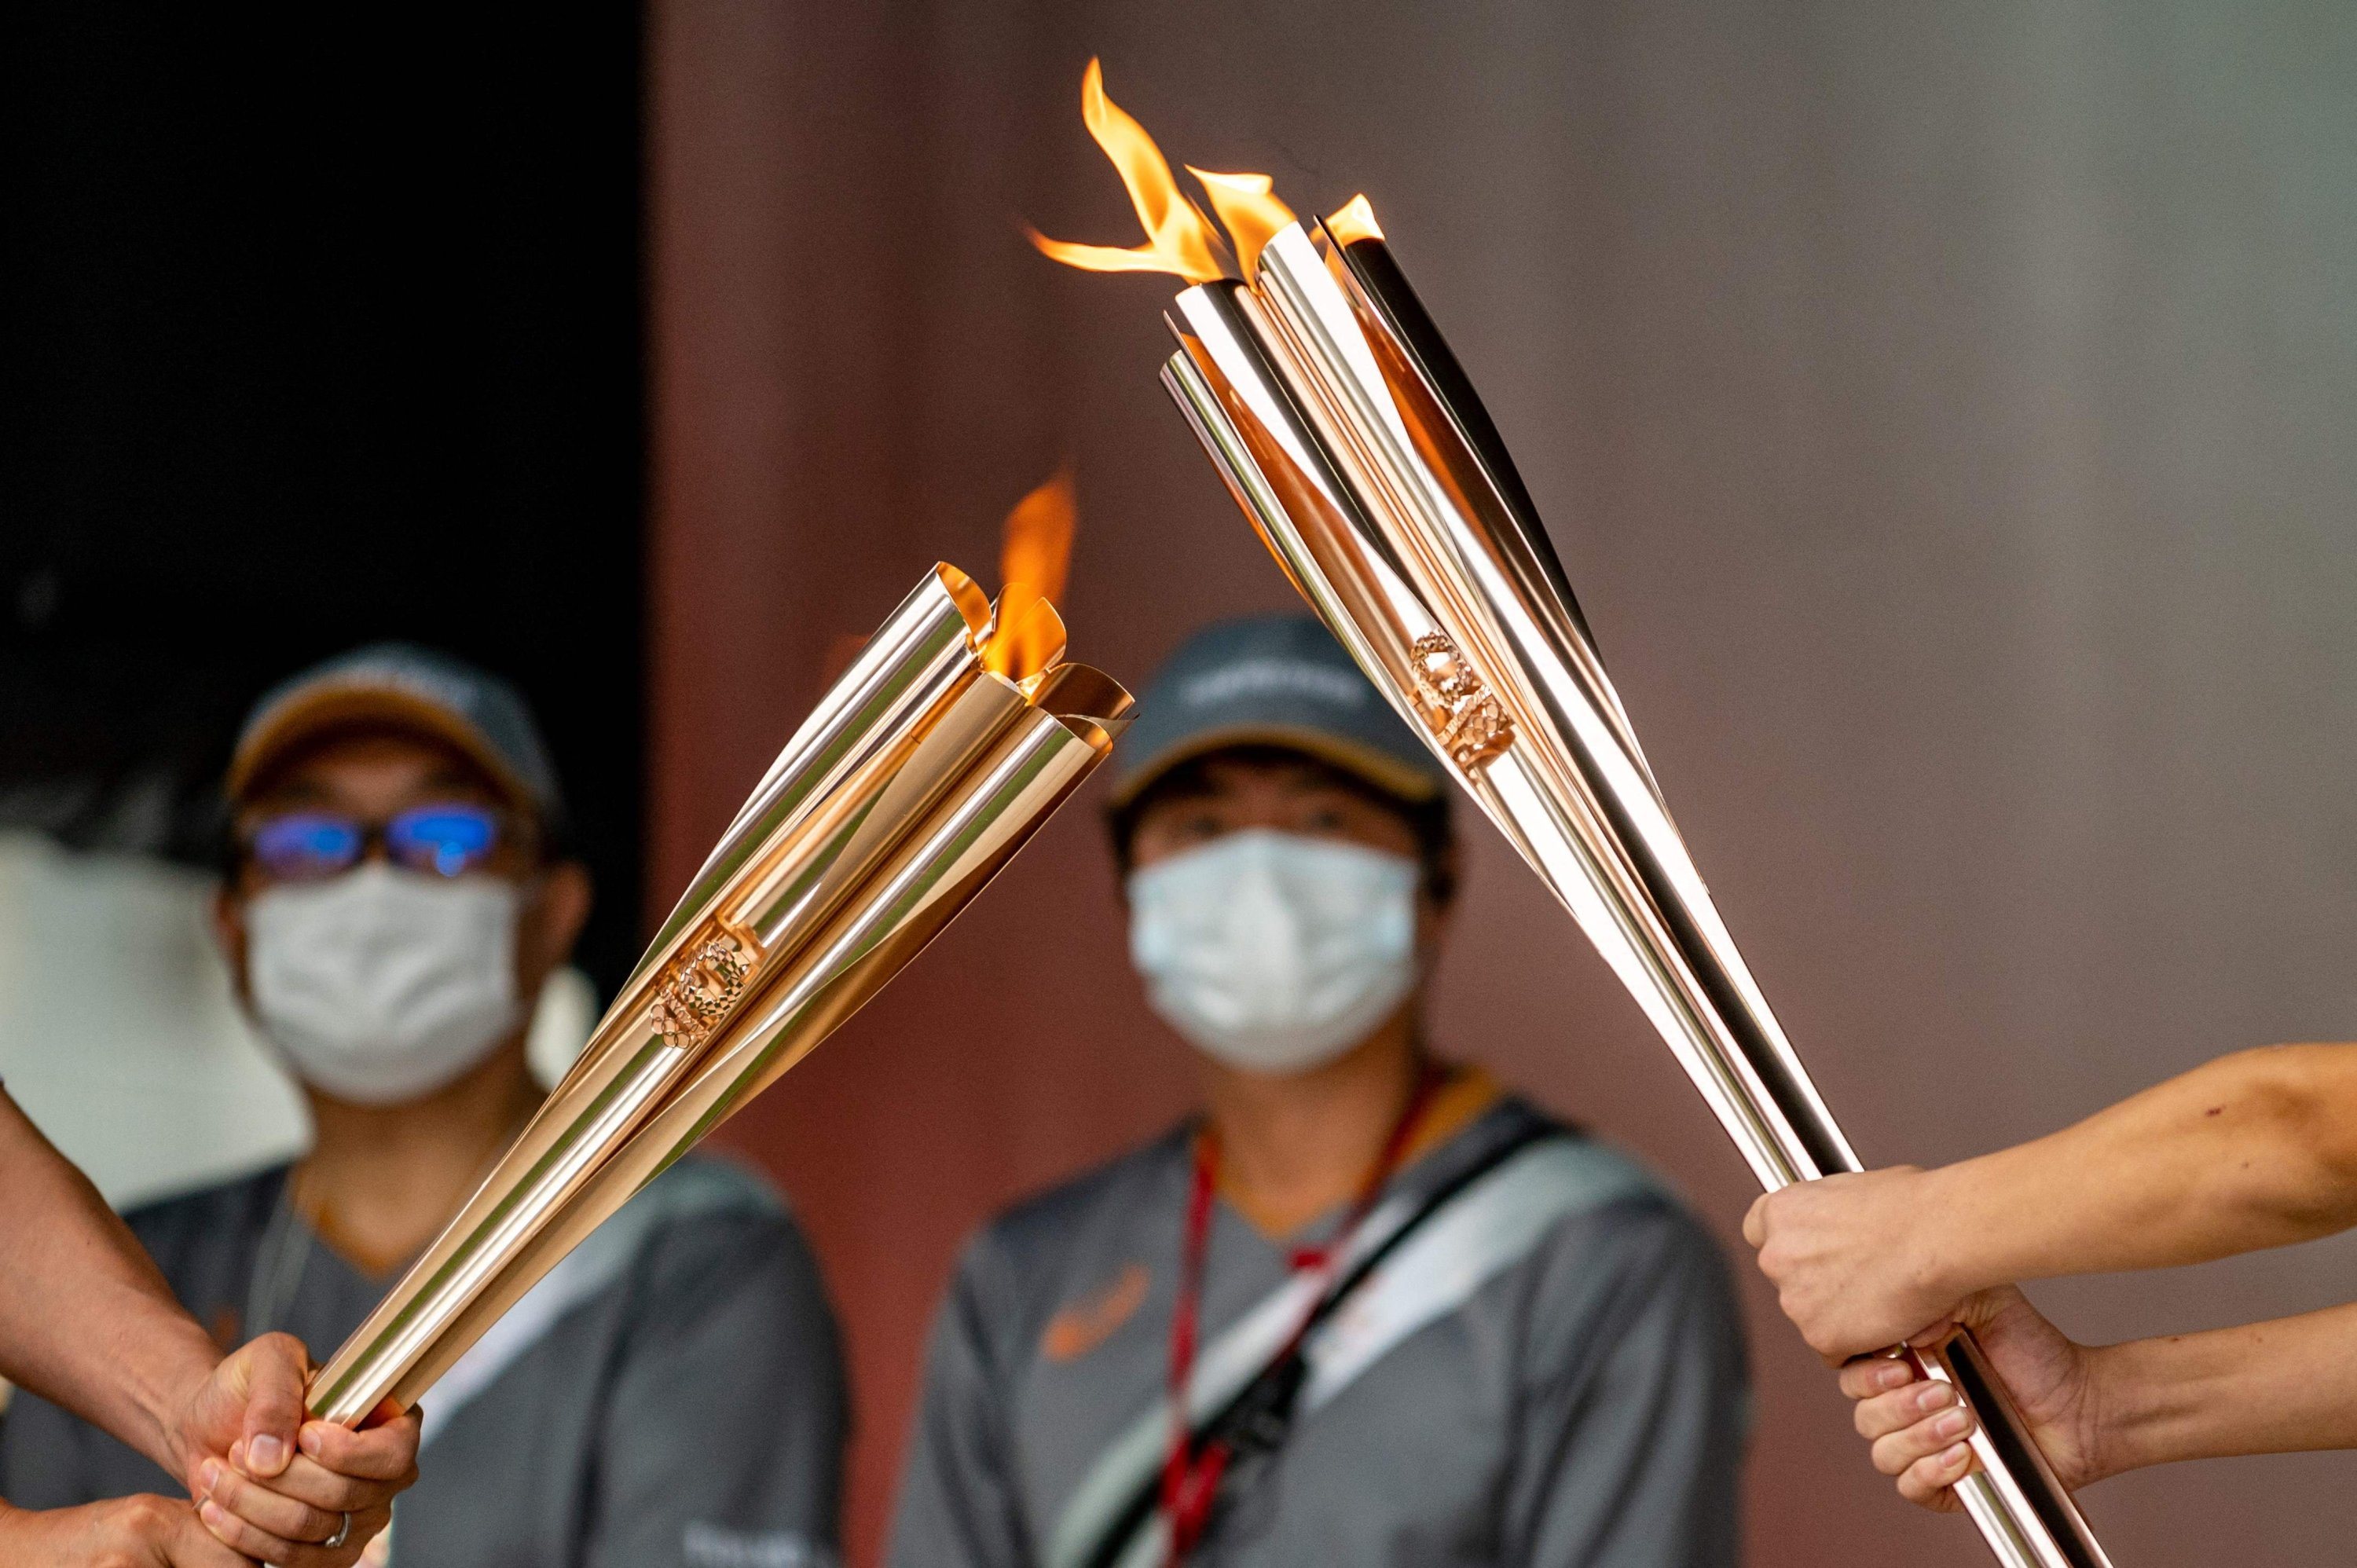 Olympic flames are seen during the lighting ceremony at Machida Shibahiro, on the first day of the torch relay in Tokyo, Japan, July 9, 2021. (AFP Photo)